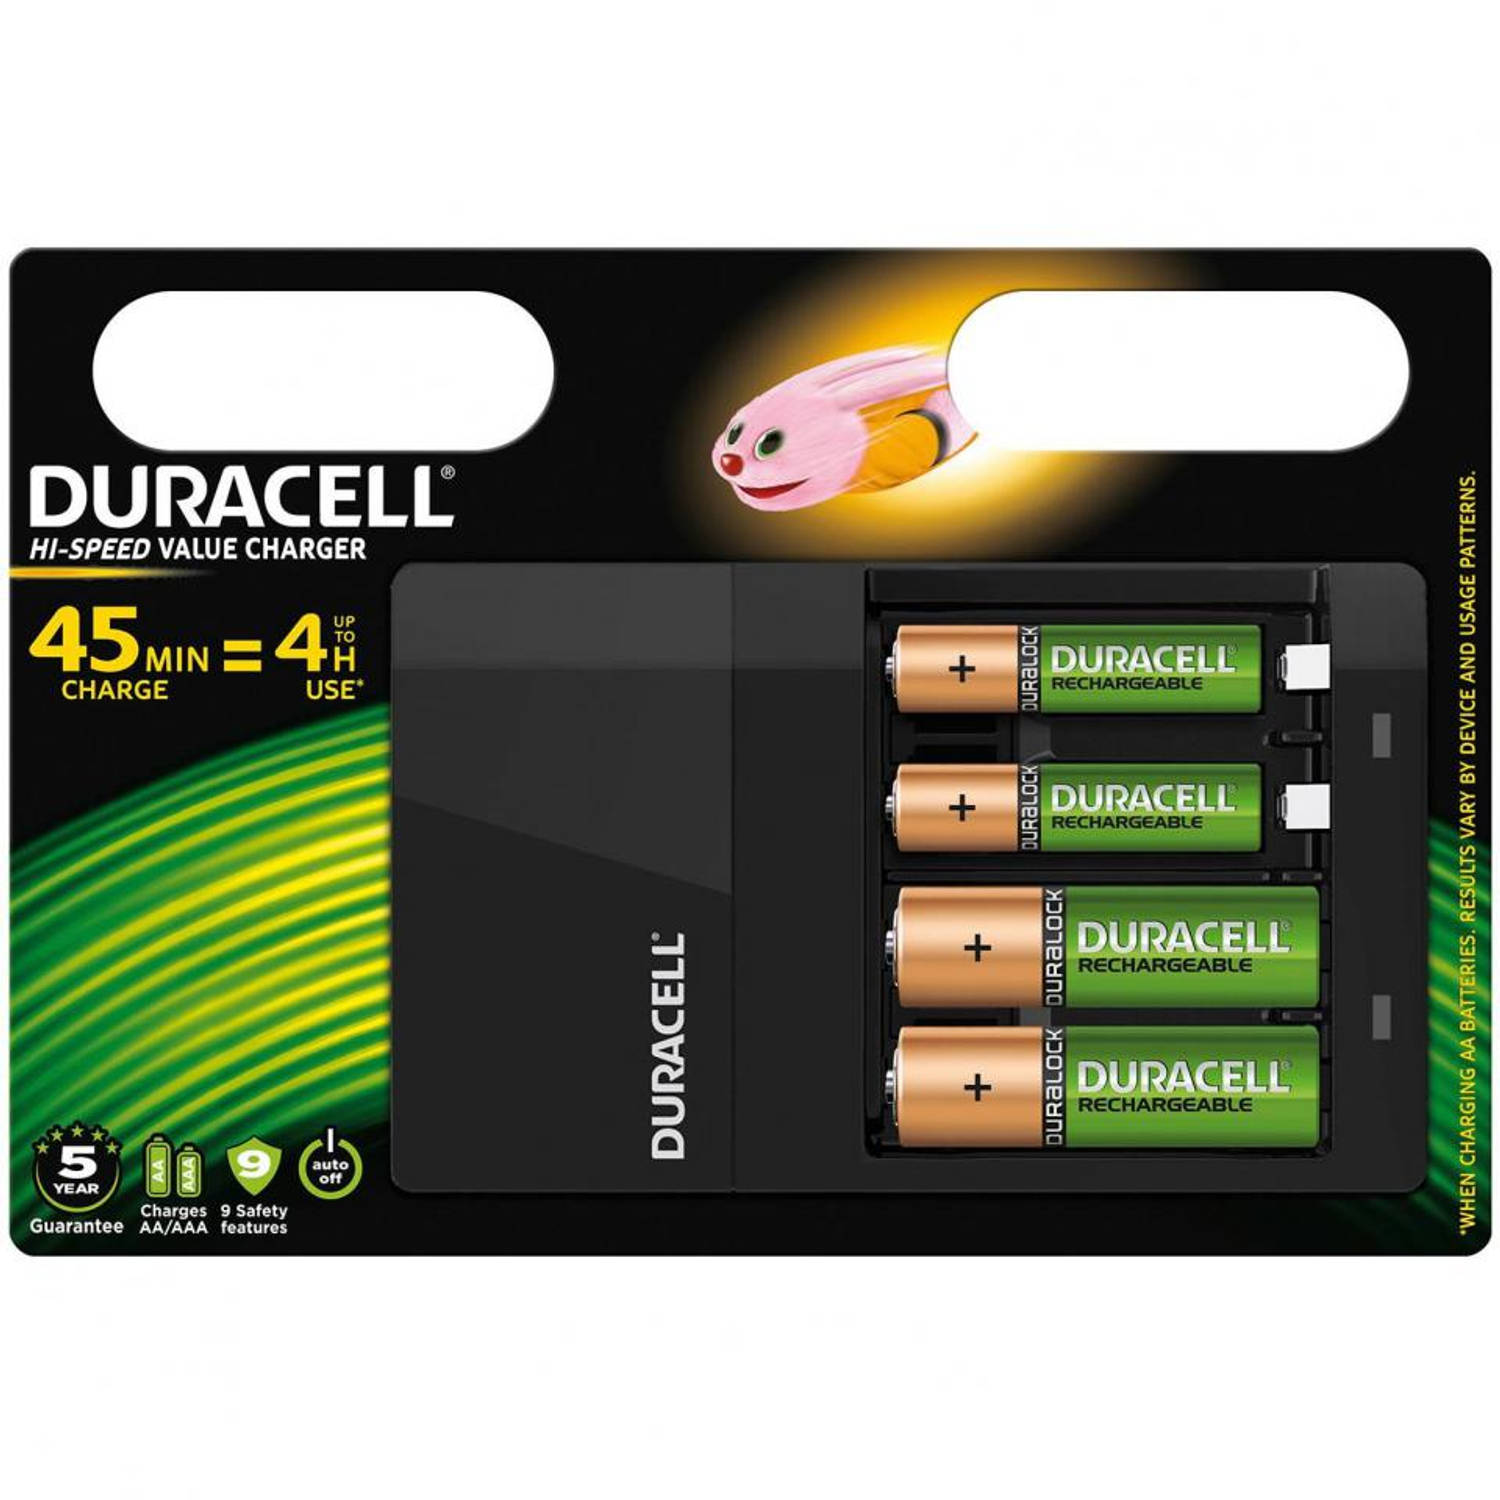 Duracell CEF 14 oplader